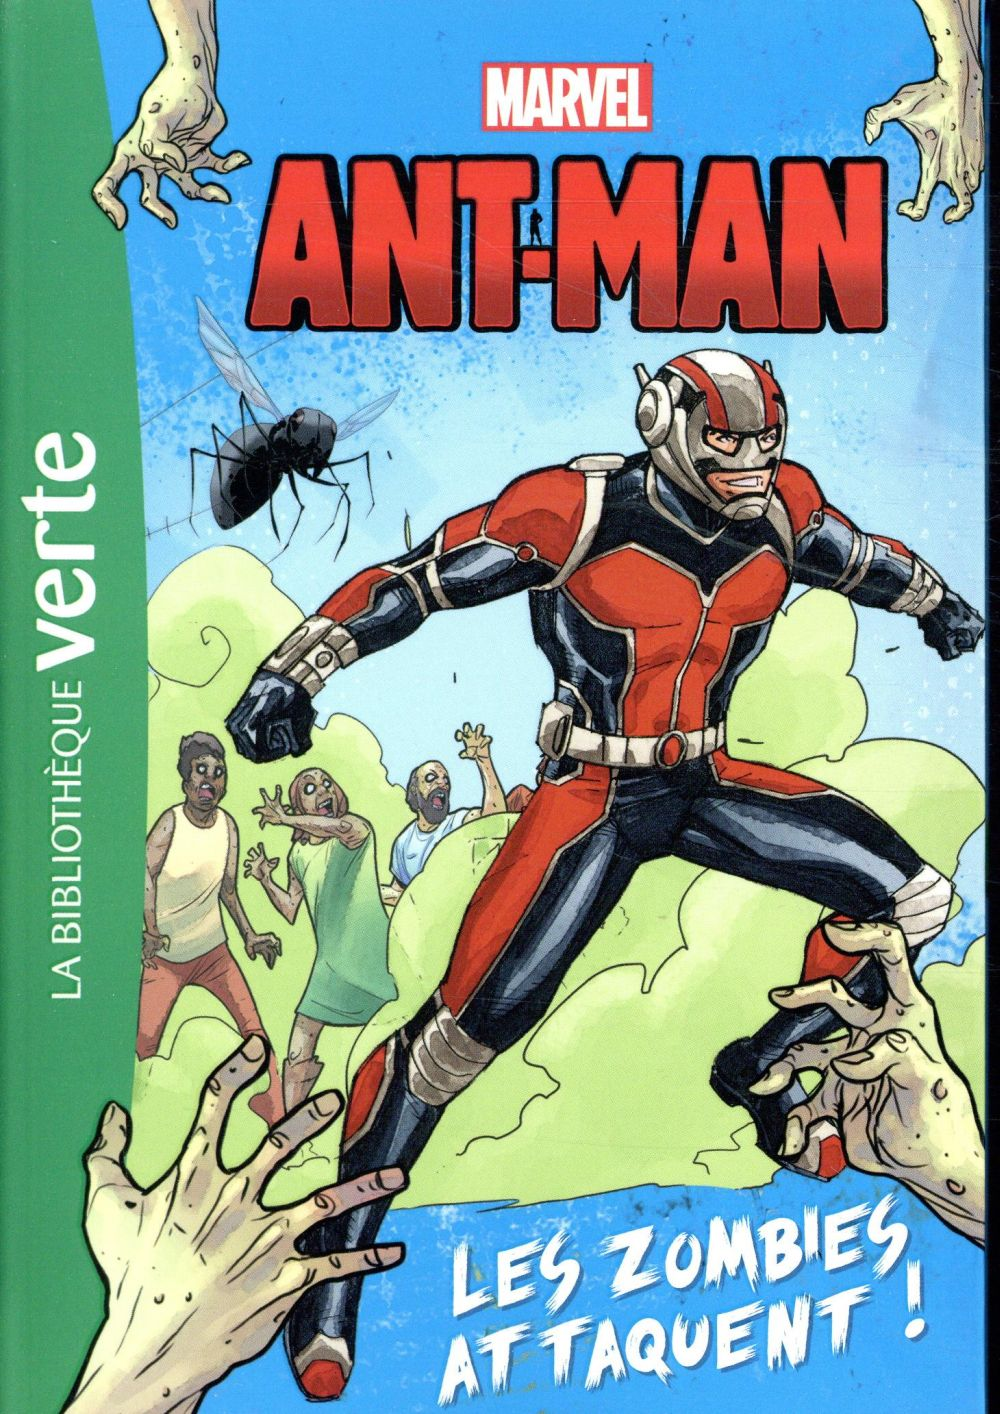 HEROS MARVEL 03 - ANTMAN, LES ZOMBIES ATTAQUENT  HACHETTE